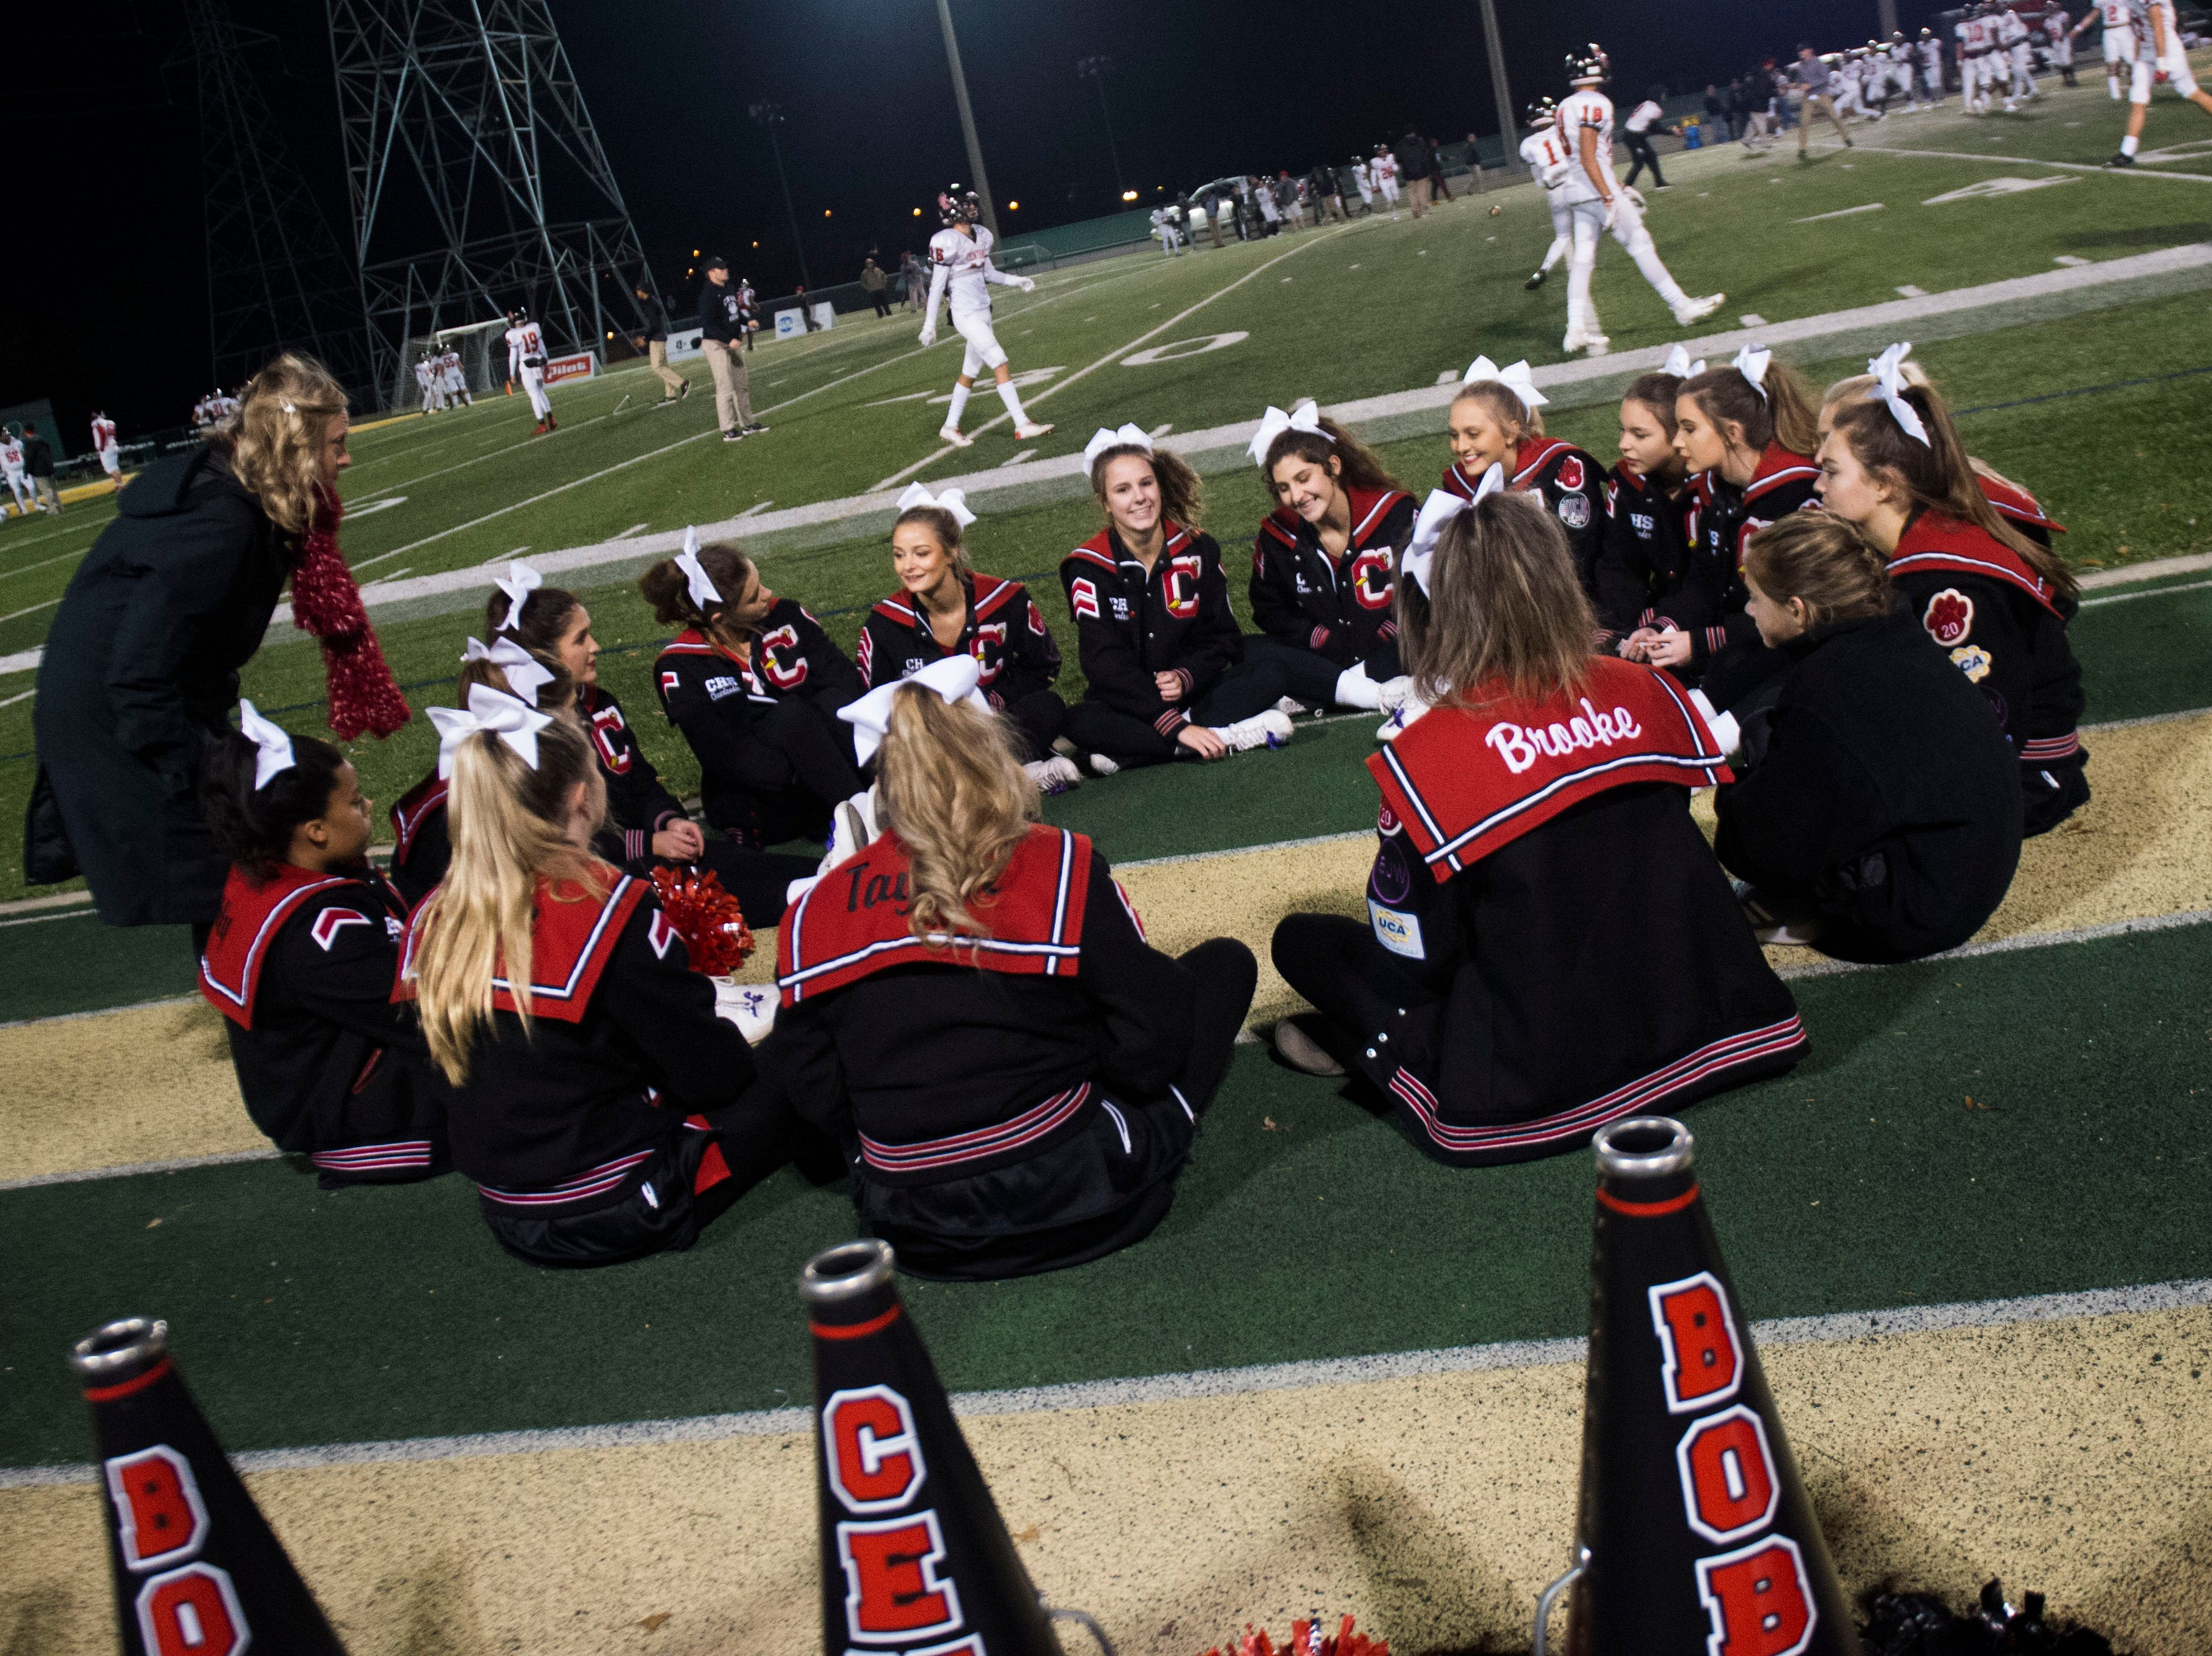 Central cheerleaders gather before a game between Catholic and Central at Catholic Friday, Nov. 23, 2018.